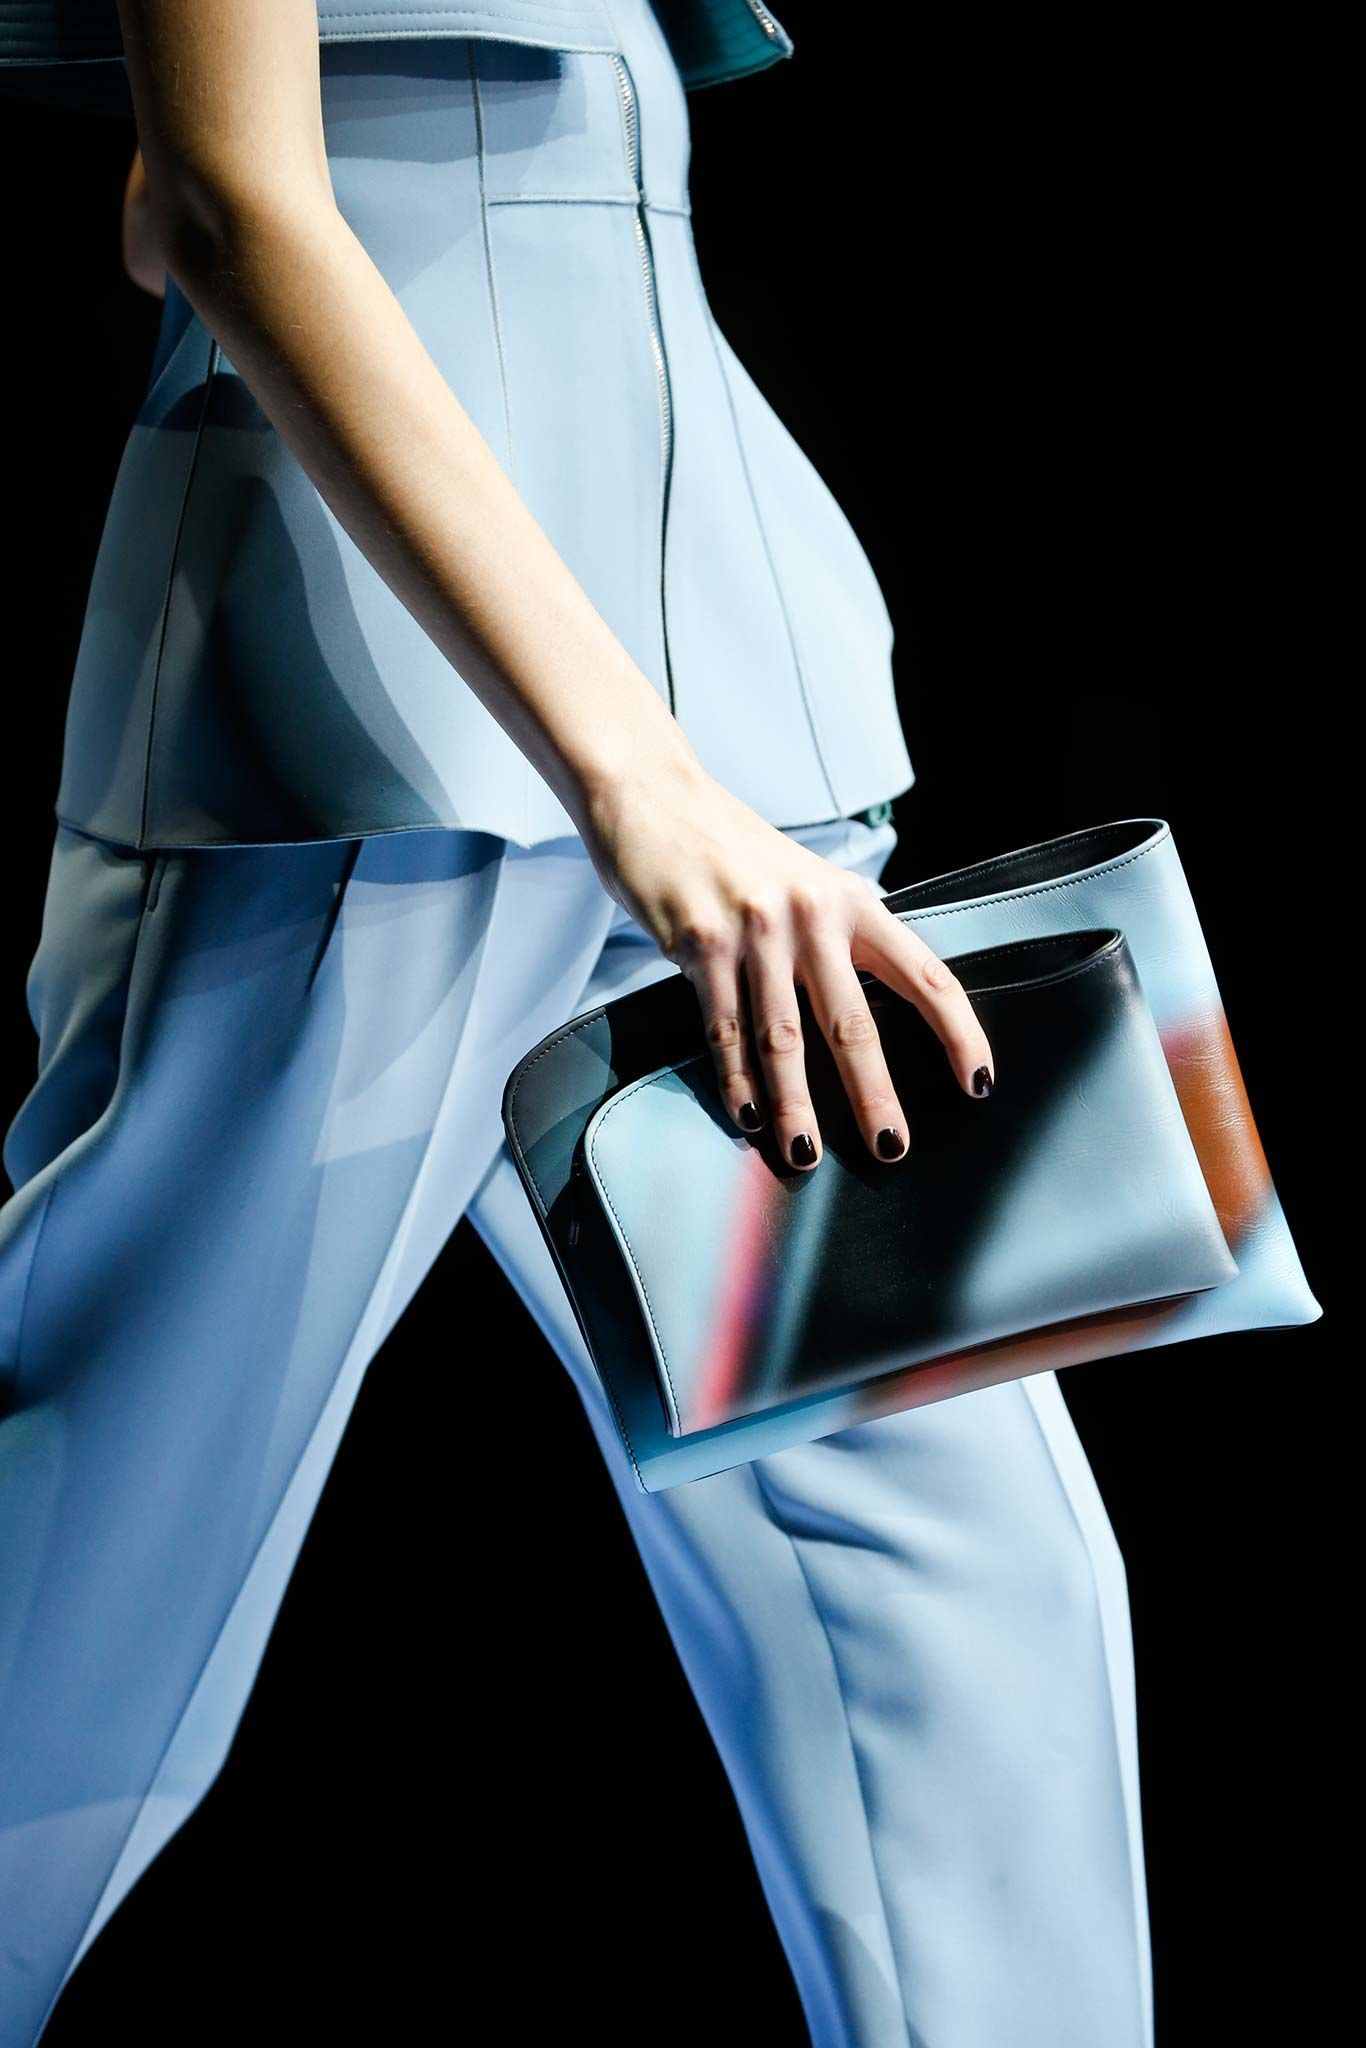 Giorgio Armani Fall 2015 Ready-to-Wear Accessories Photos - Vogue